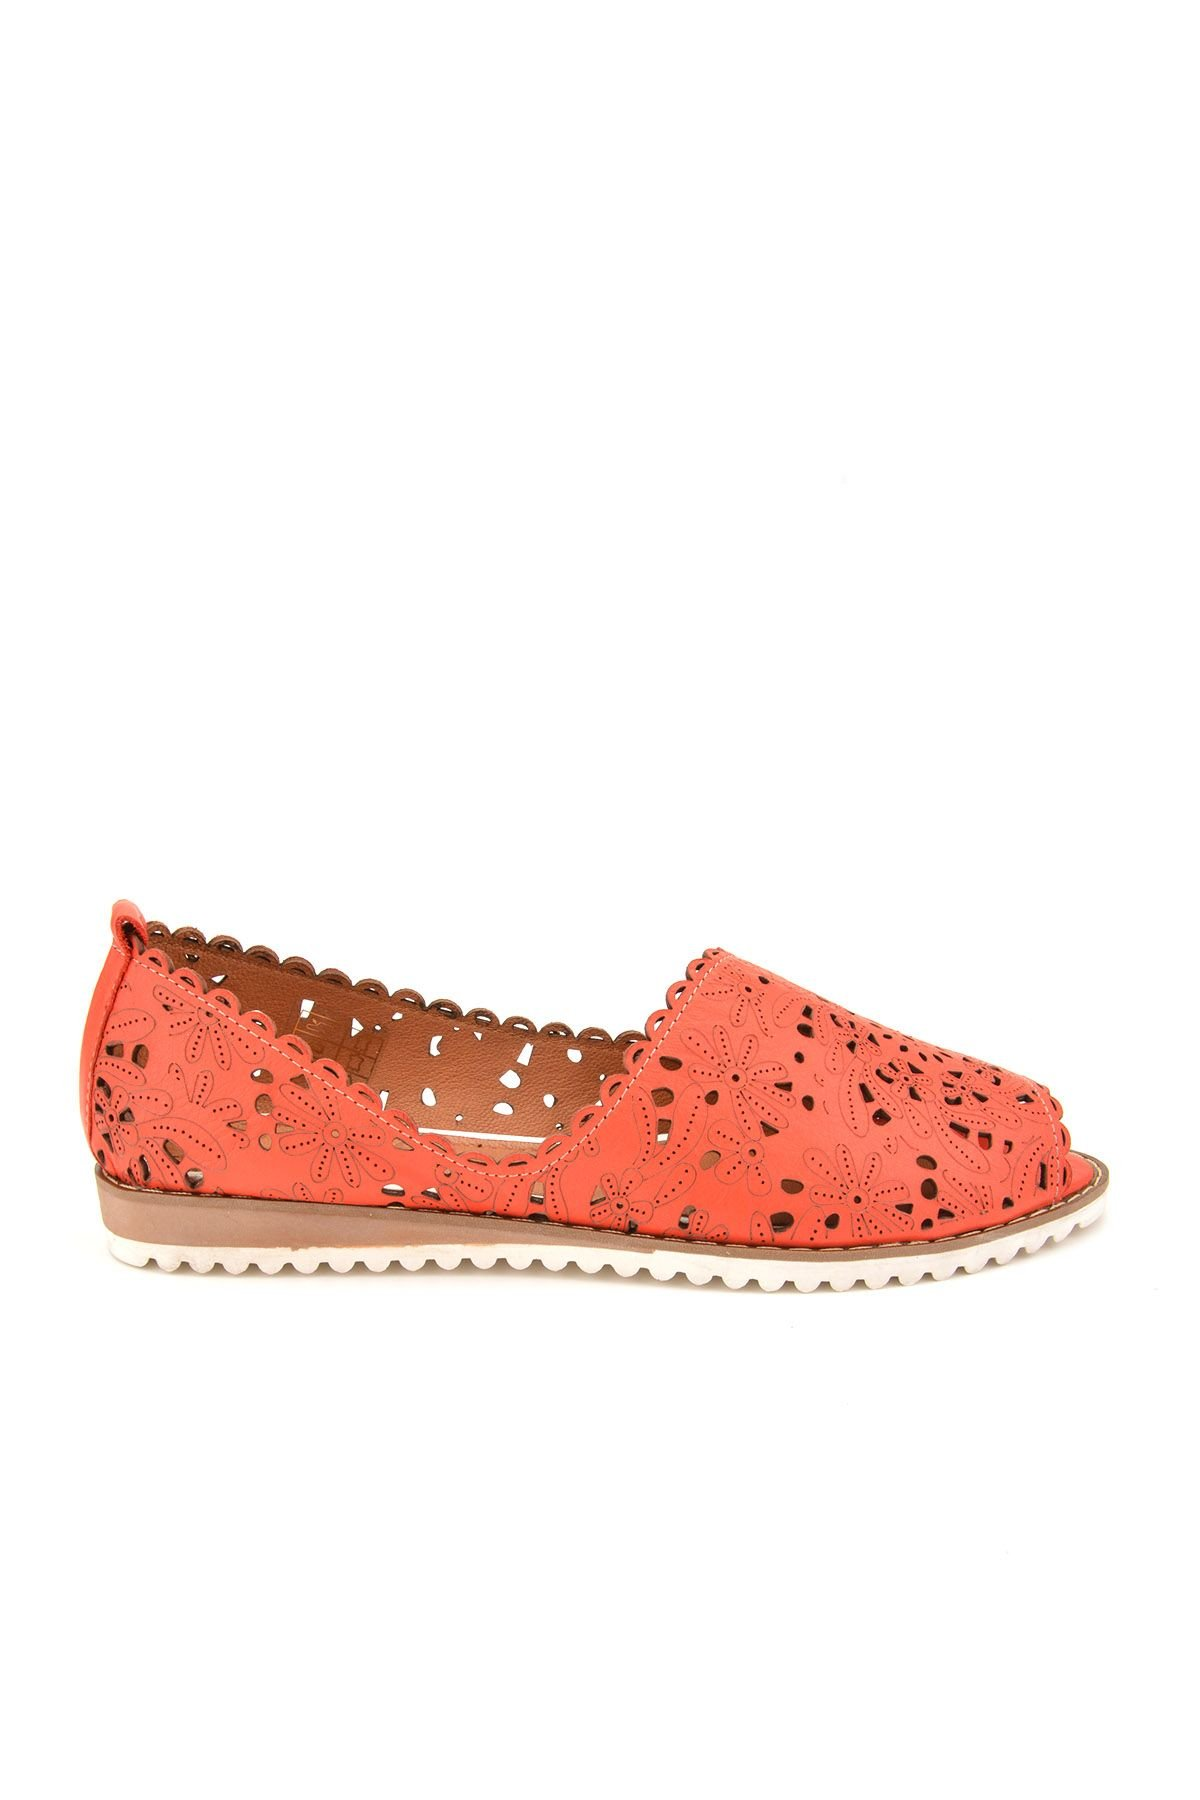 Pegia Open Fronted Women Shoes From Genuine Leather Red